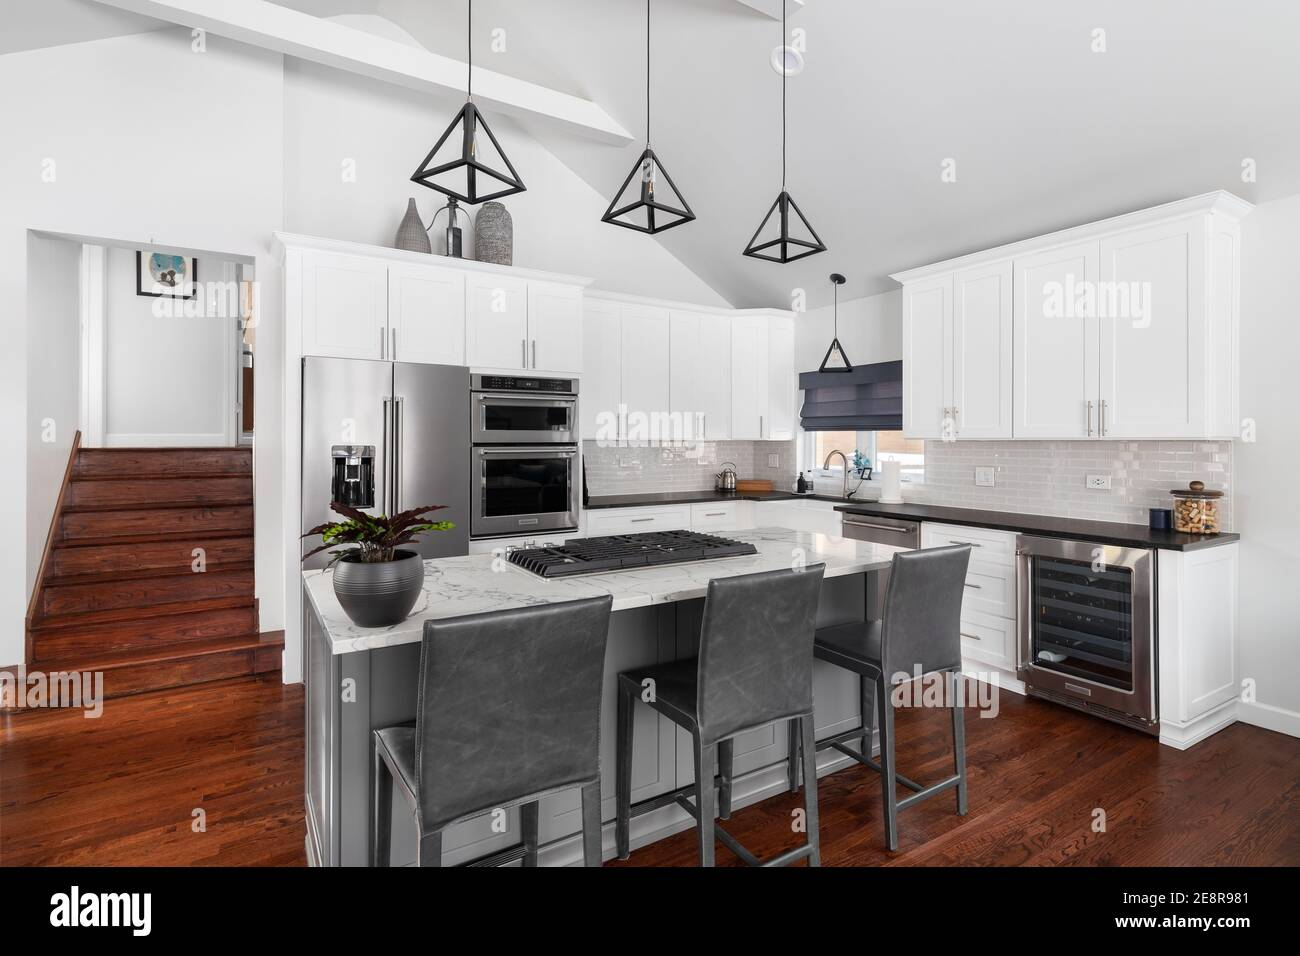 https www alamy com a beautiful white kitchen in a modern farmhouse with black lights hanging from the vaulted ceiling over the island and bar stools image401267889 html